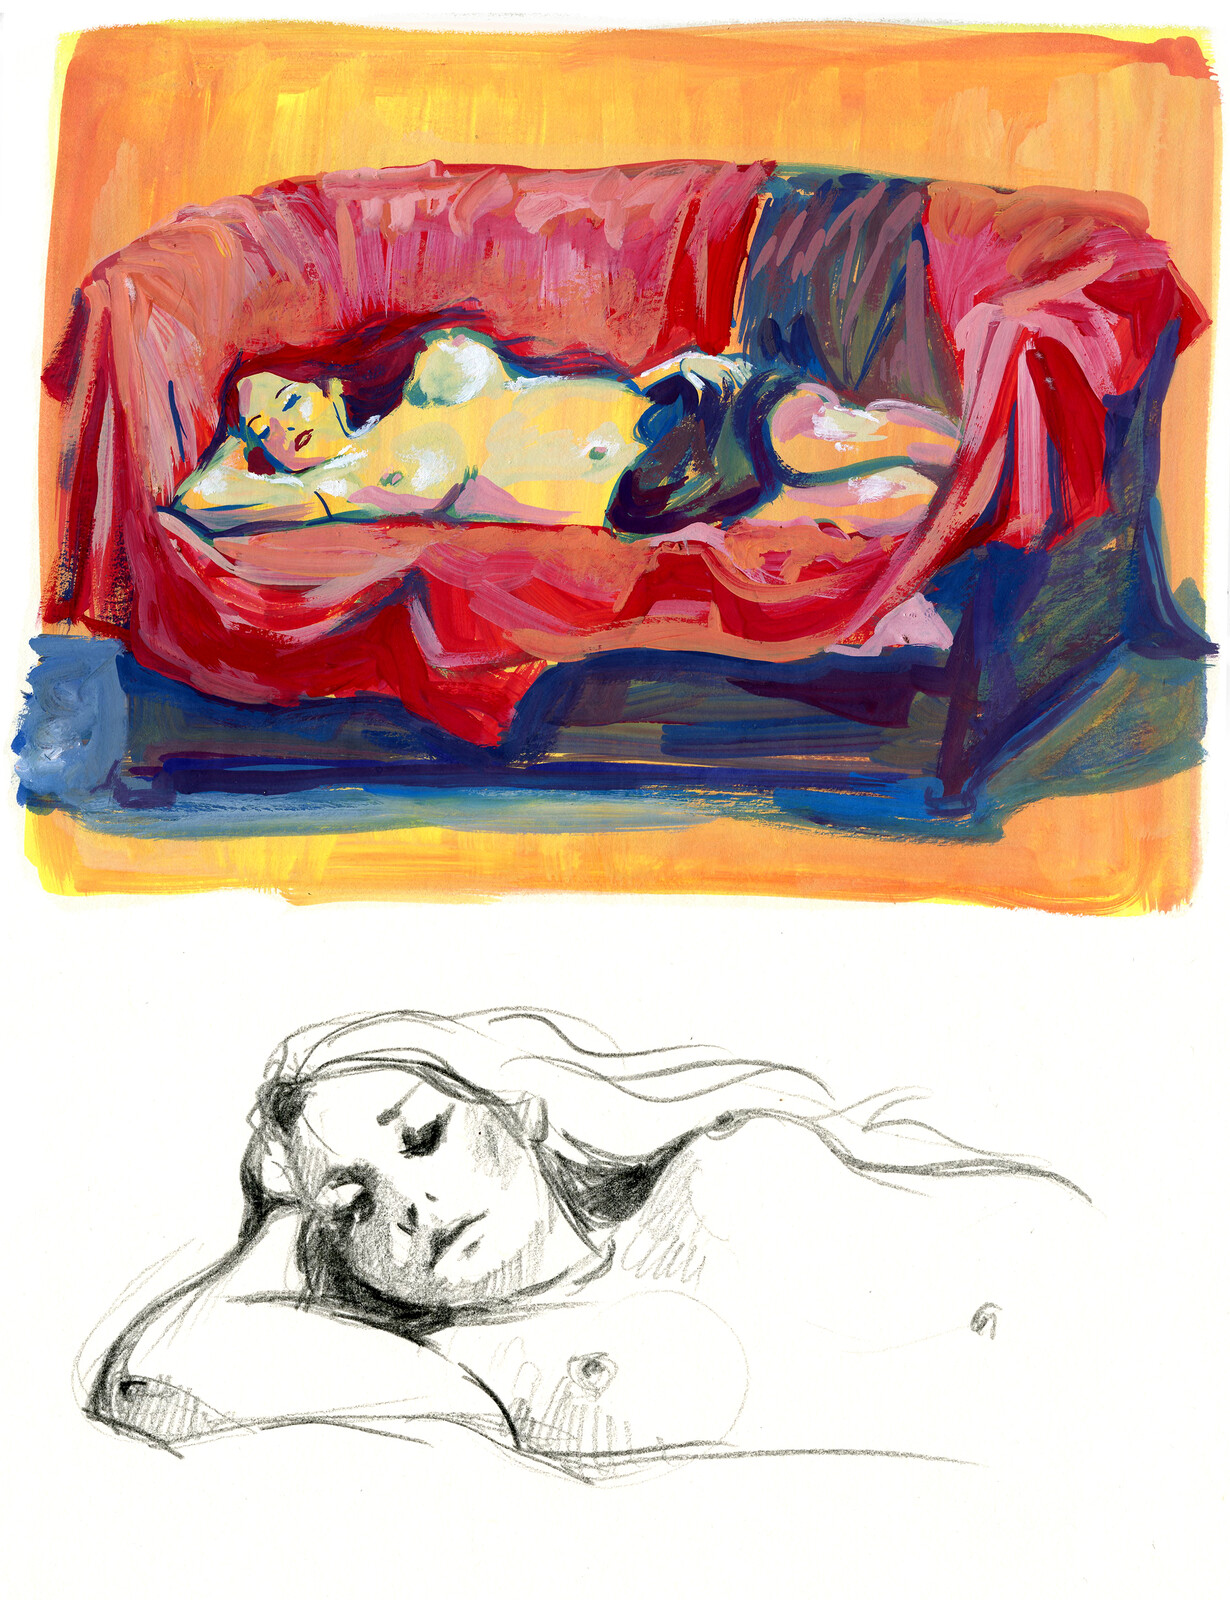 Life Drawing in Reading